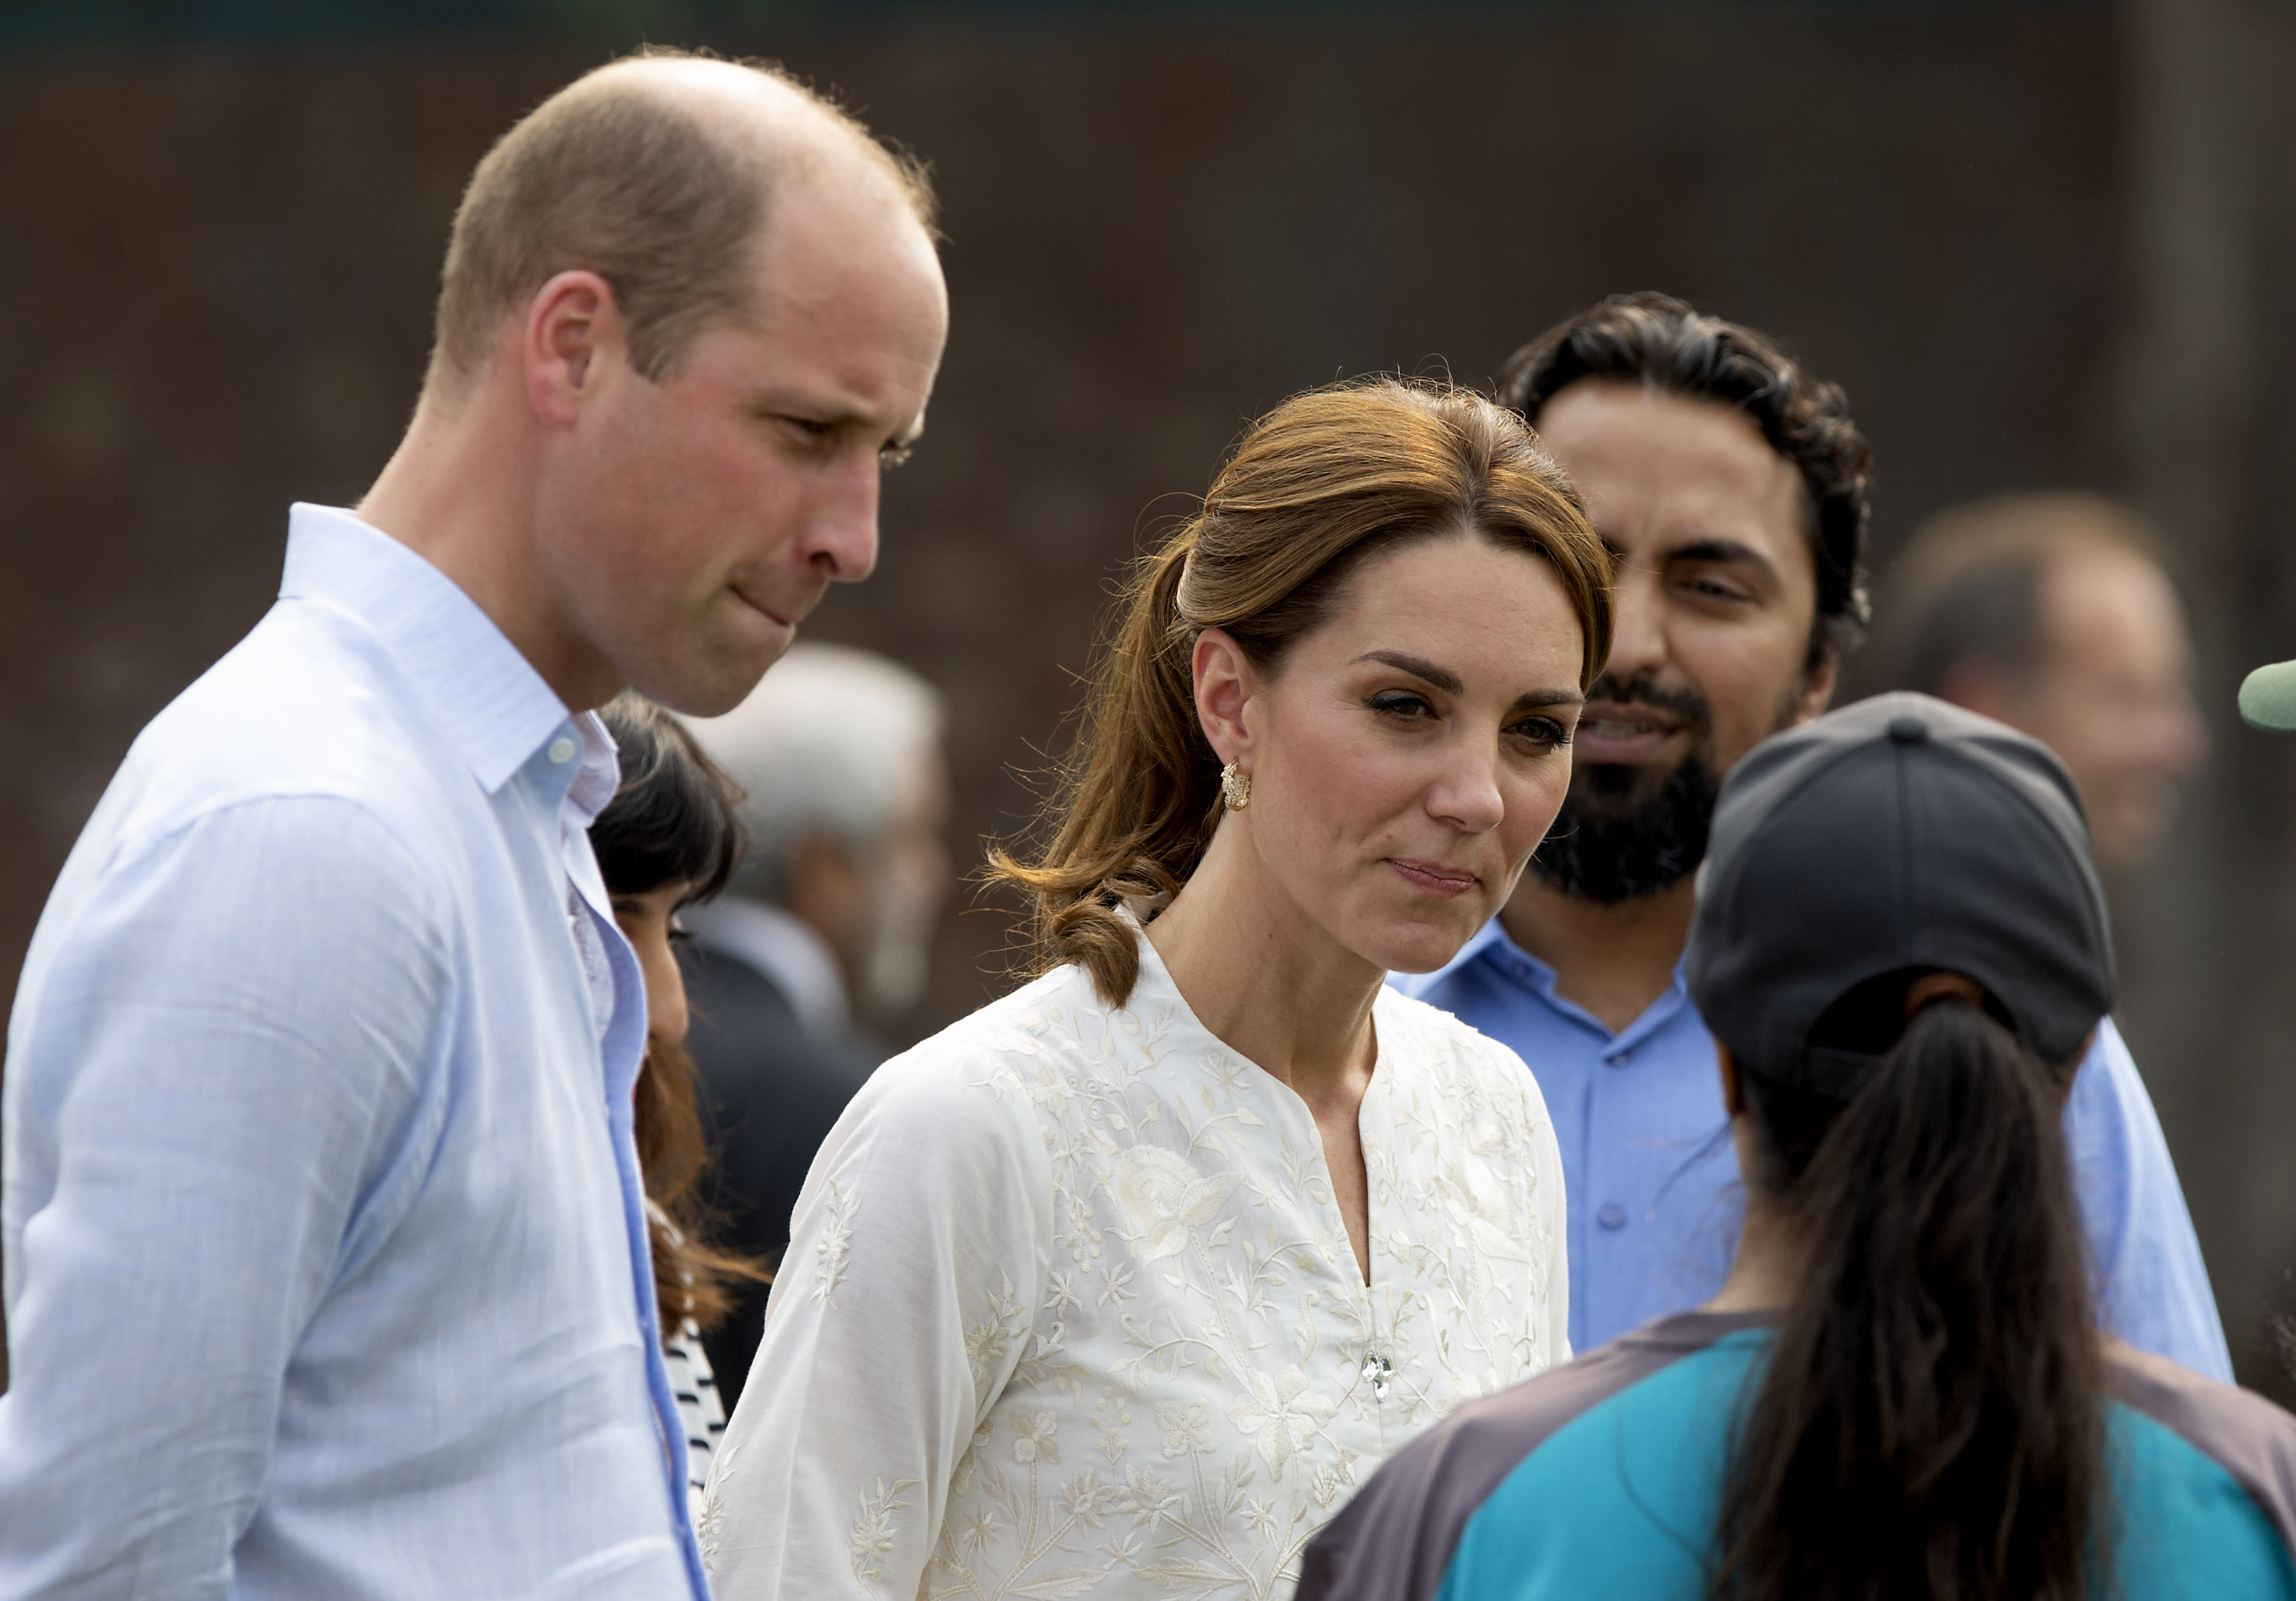 Prince William and Kate Middleton's plane in 'terrifying' emergency landing during storm